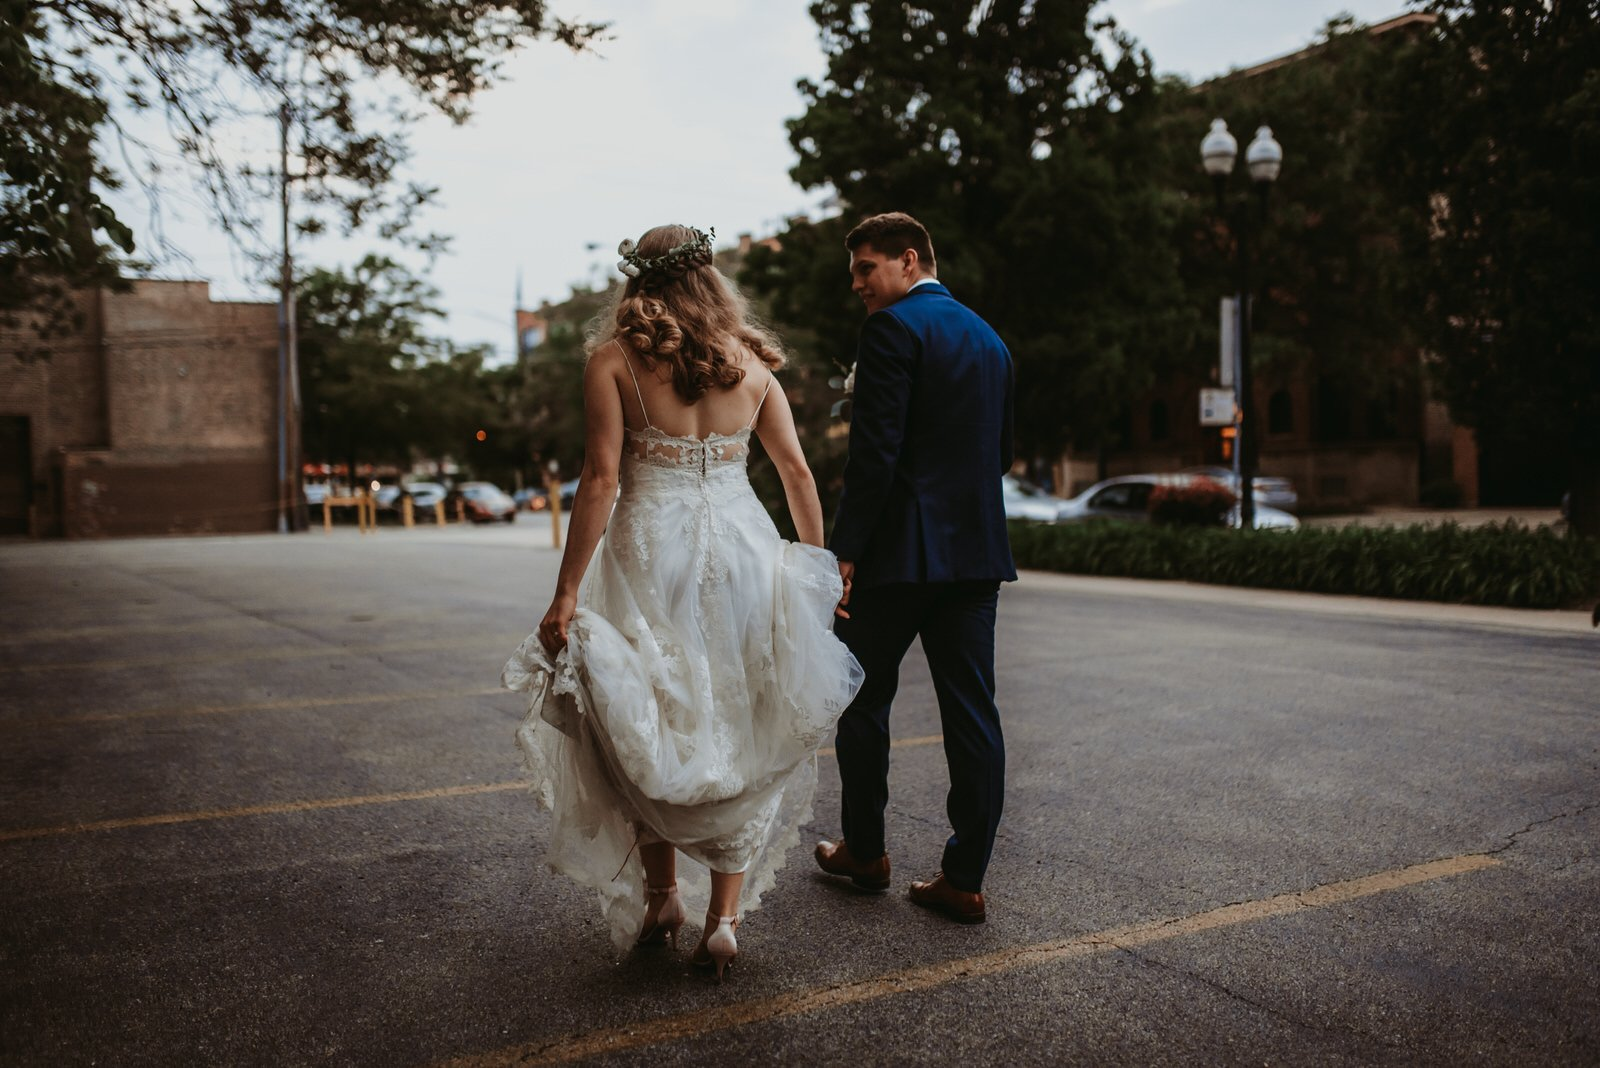 Chicago streets, Architectural Artifacts wedding photography